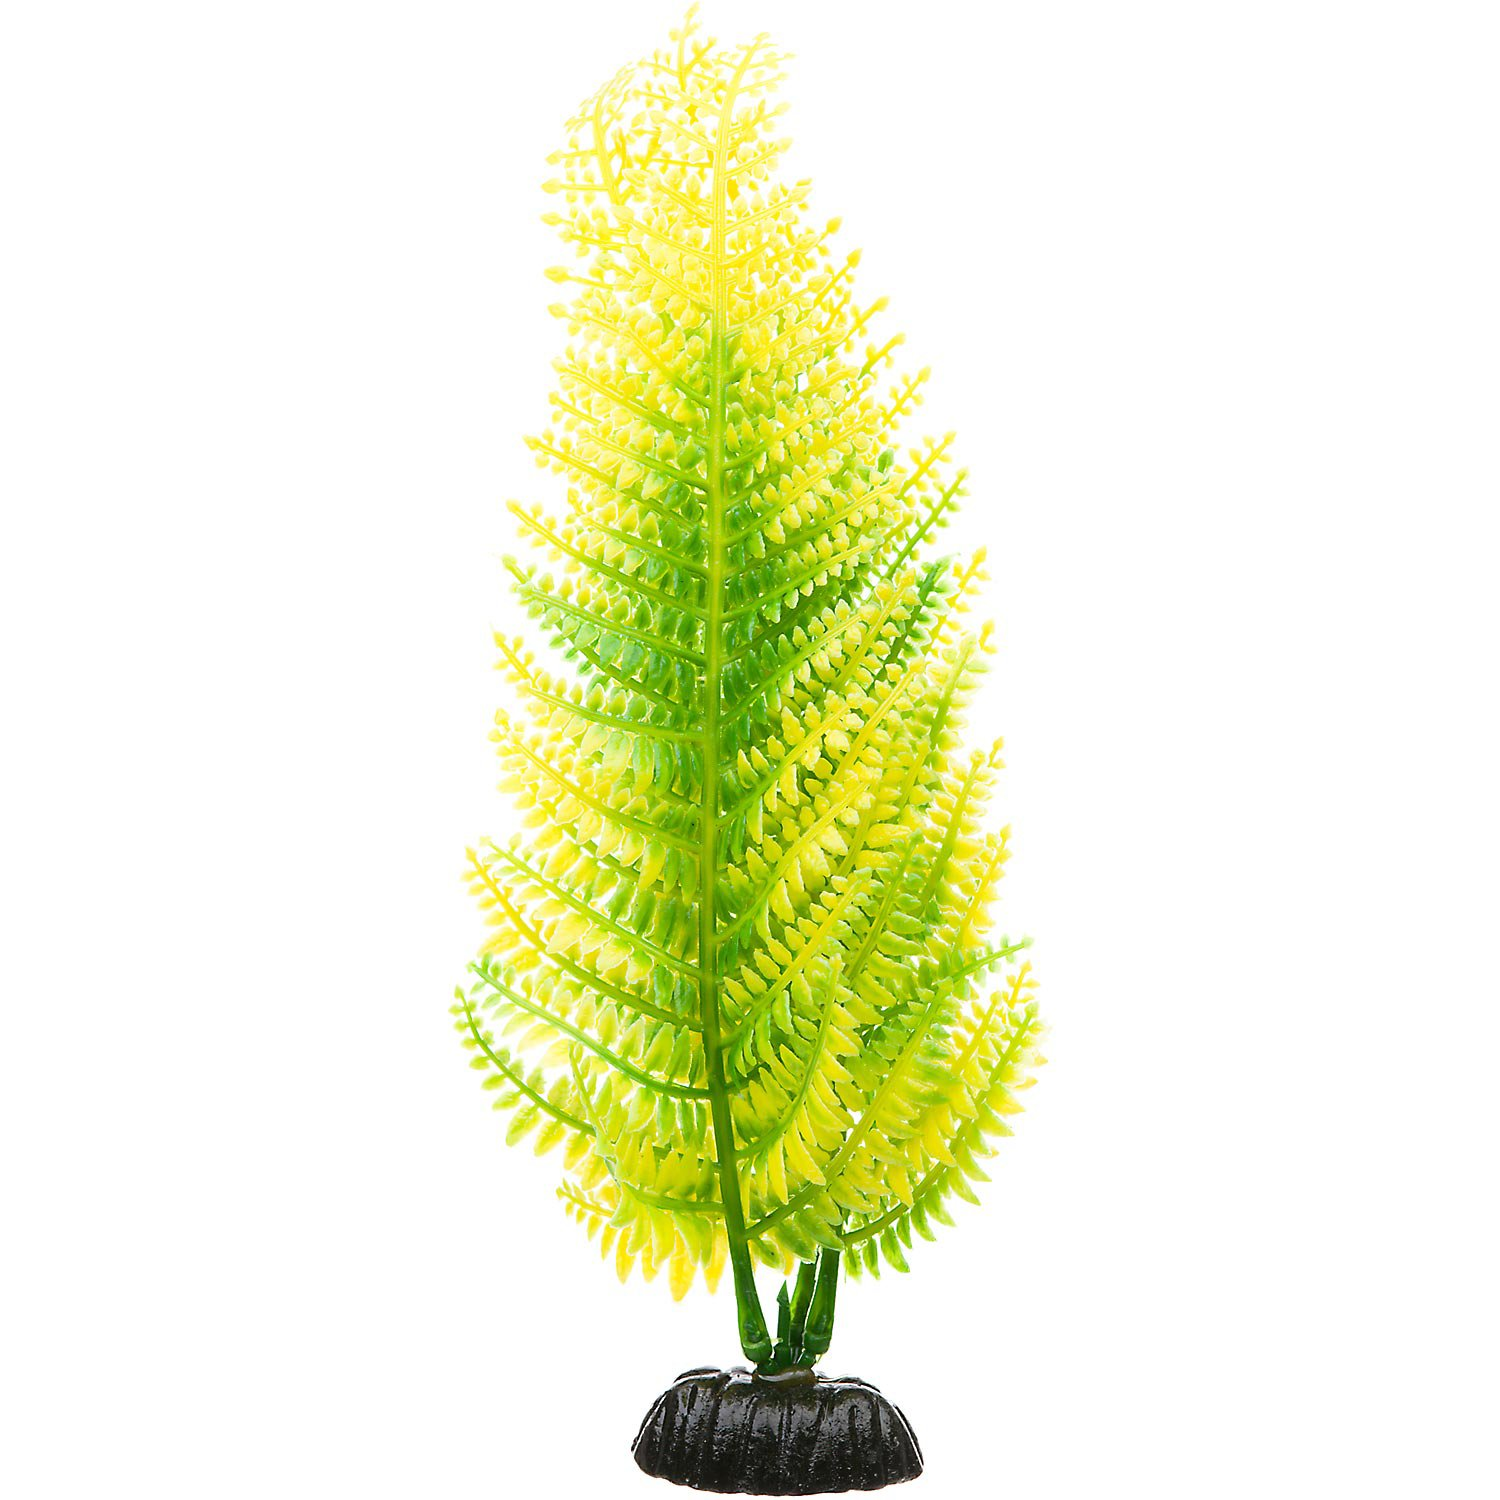 Imagitarium Fern Midground Plastic Aquarium Plant Planted Aquarium Plants Colorful Plants